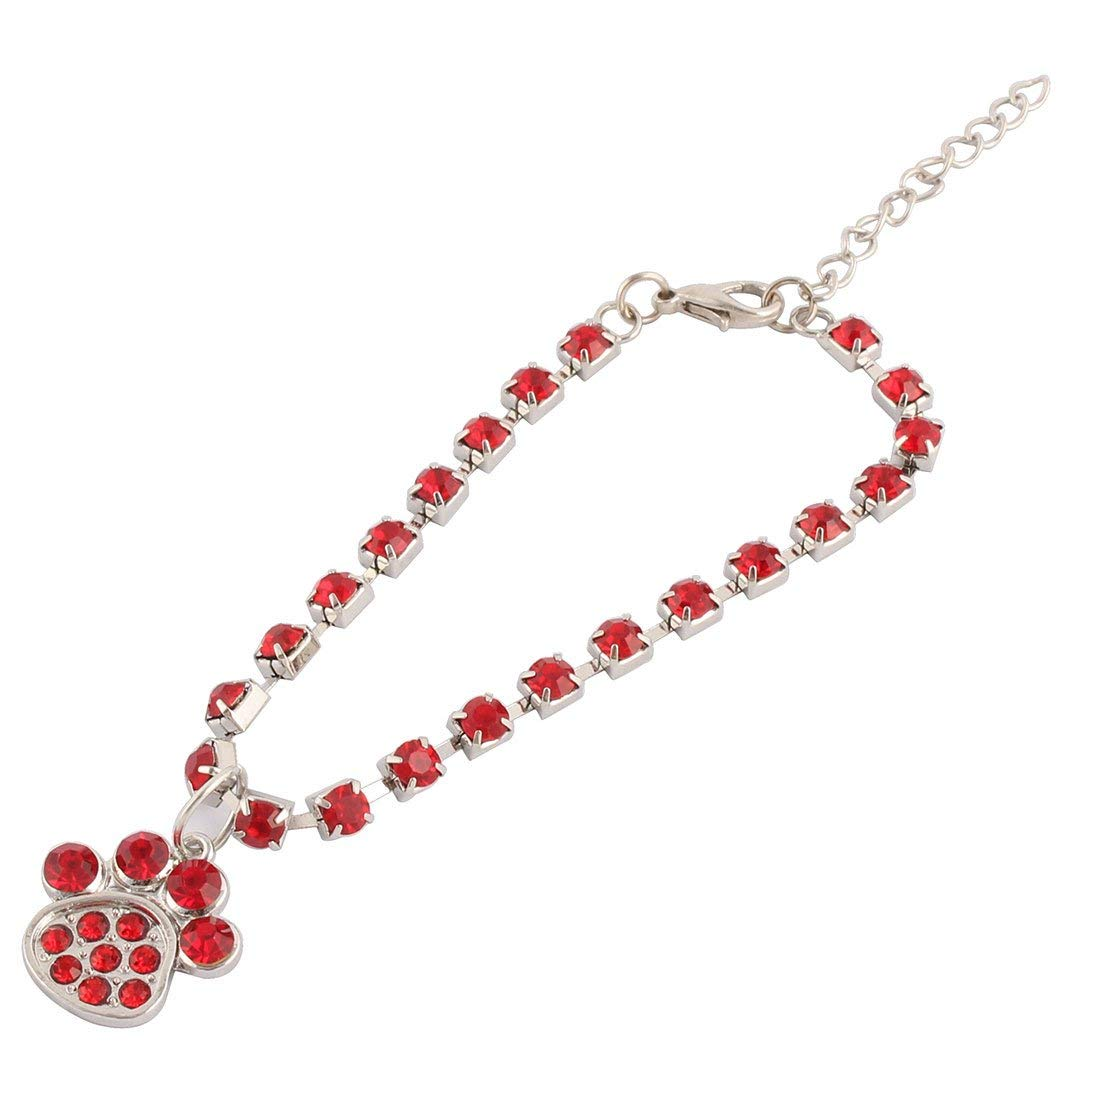 Rhinestone Laid Metal Outdoor Cat Paw Pendent Decoration Pet Necklace Bracelet Red